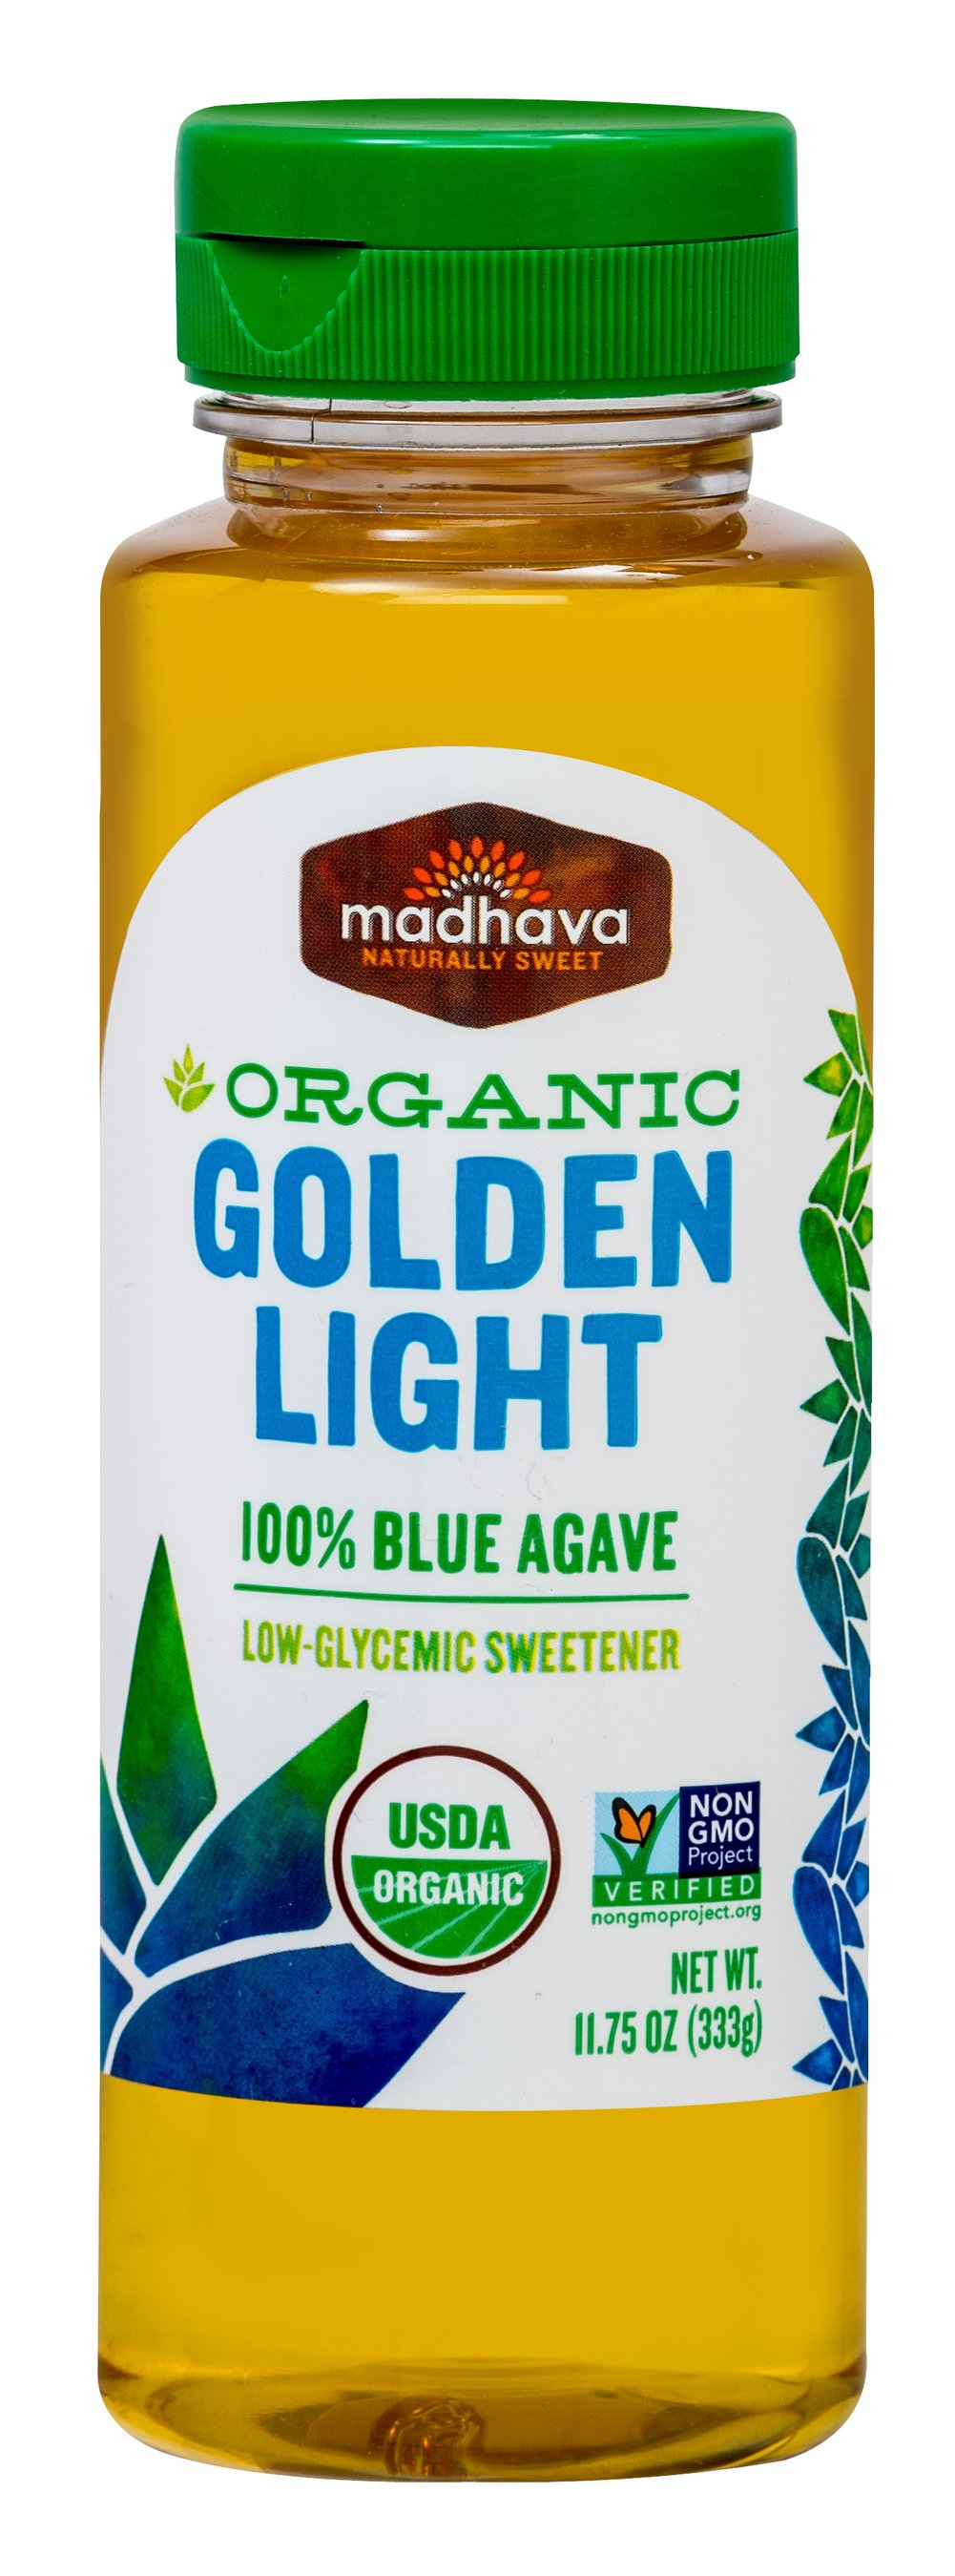 Organic Light Agave <p><strong>From the Manufacturer's Label: </strong></p><p>Madhava Agave is an all-natural sugar replacement made from the juice of the agave plant. It's a simple plant-based food that is a great alternative to processed sugar or artificial sweeteners.</p><p>Just pure deliciousness. Enjoy!</p> 11.75 oz Bottle